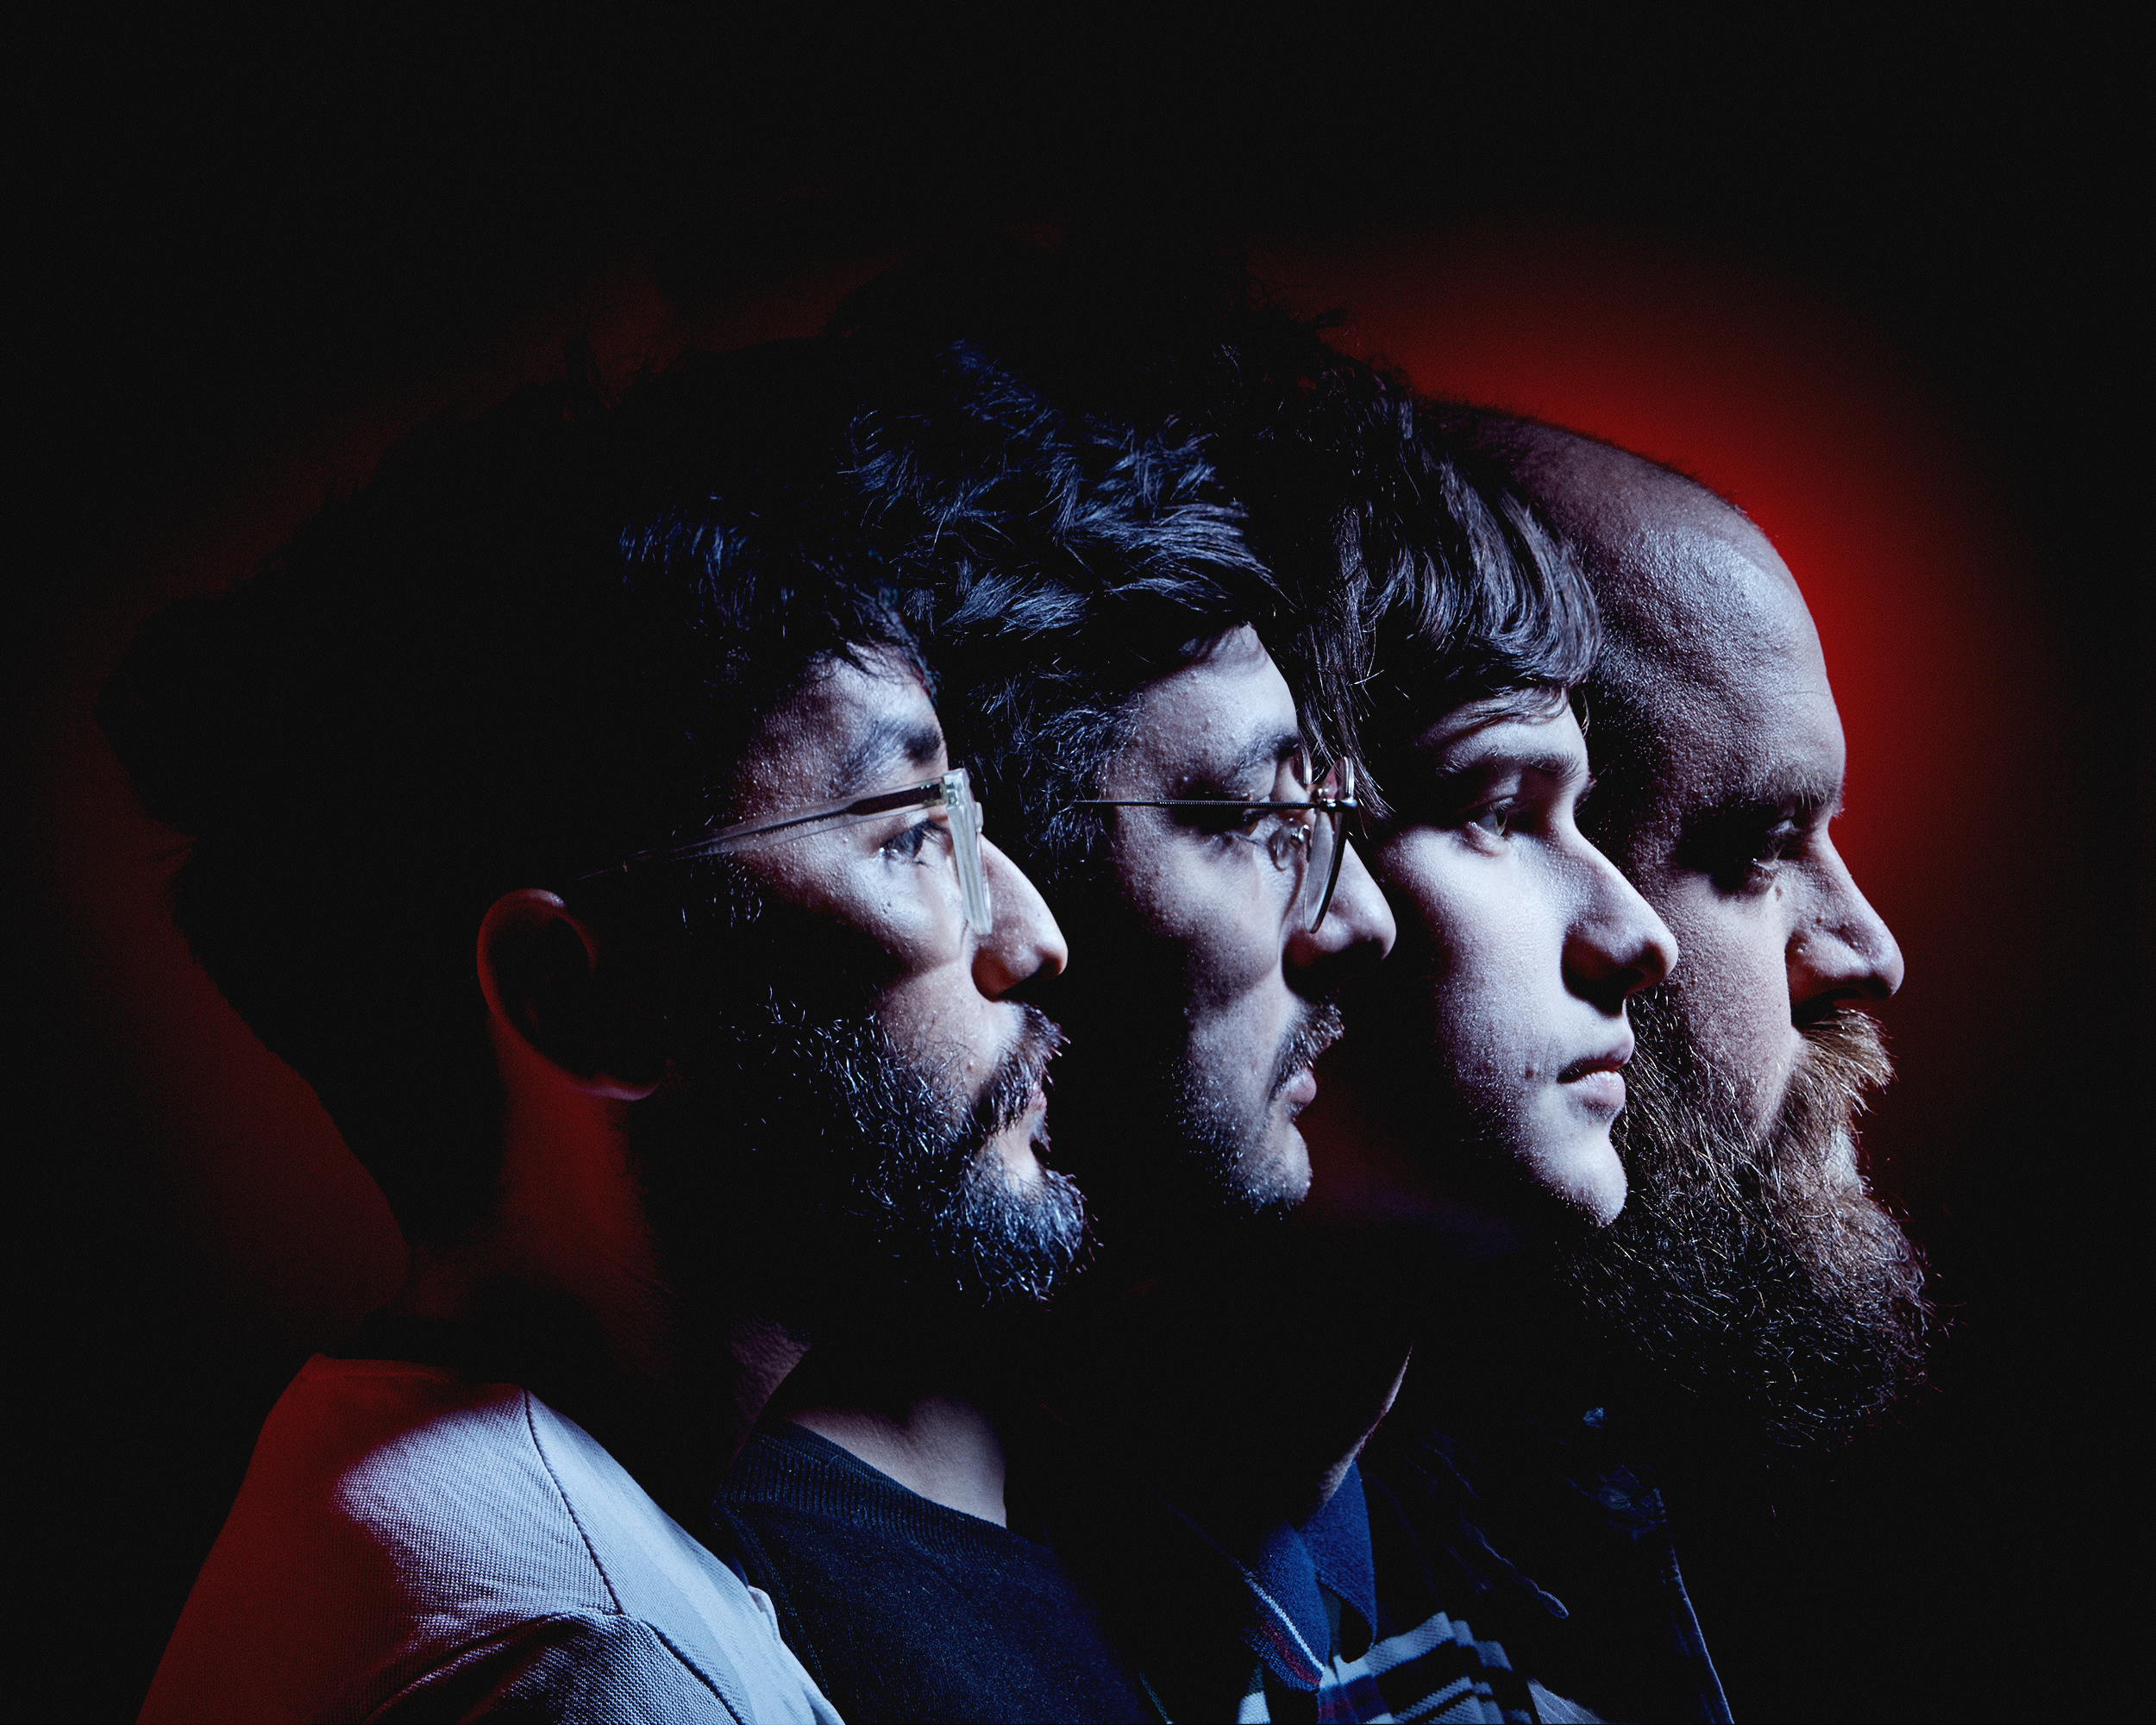 INTERVIEW: FOXING